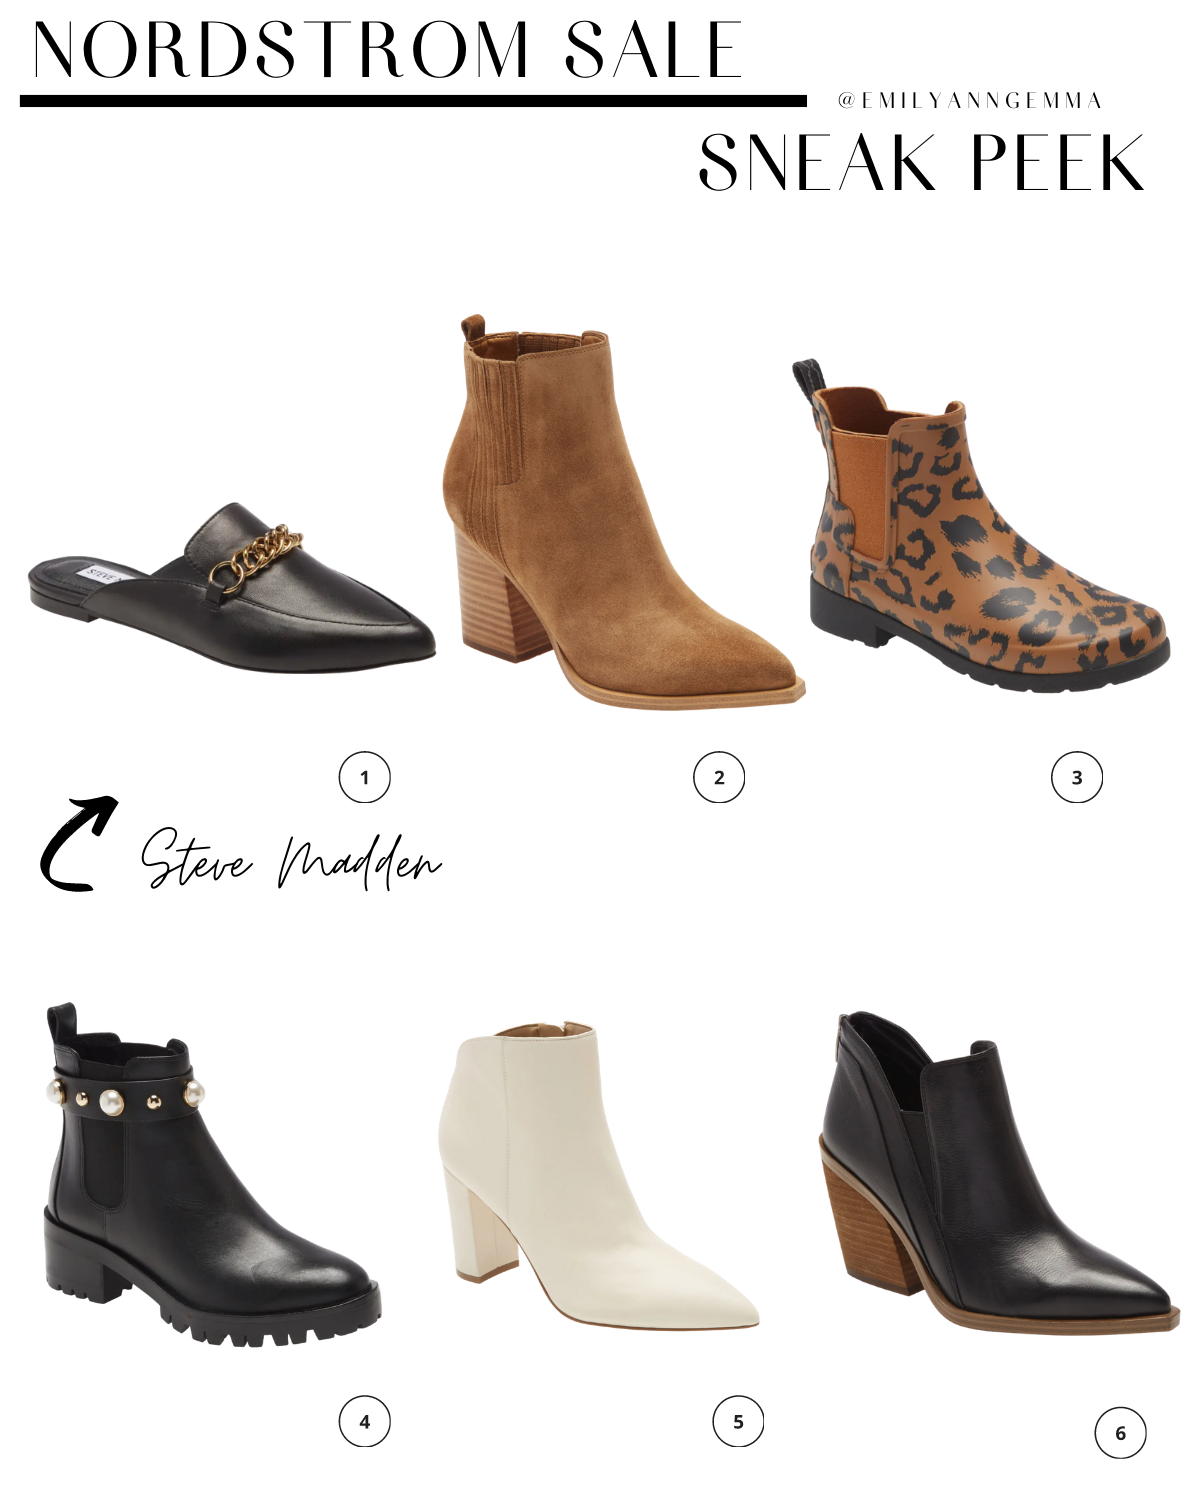 nsale 2020, nordstrom anniversary sale 2020, boots and booties Nordstrom sale, Steve Madden slides nsale, must have blog posts nordstrom sale 2020, Emily Ann Gemma, the sweetest thing blog | Nordstrom Anniversary Sale by popular US fashion blog, The Sweetest Thing: image of Nordstrom STEVE MADDEN Forever Chain Pointed Mule, MARC FISHER LTD. Oshay Pointed Toe Bootie, HUNTER Original Leopard Print Waterproof Rain Boot, KARL LAGERFIELD Paris Pola Studded Chelsea Bootie, MARC FISHER LTD. Unno Bootie, VINCE CAMUTO Gradina Block Heel Bootie.